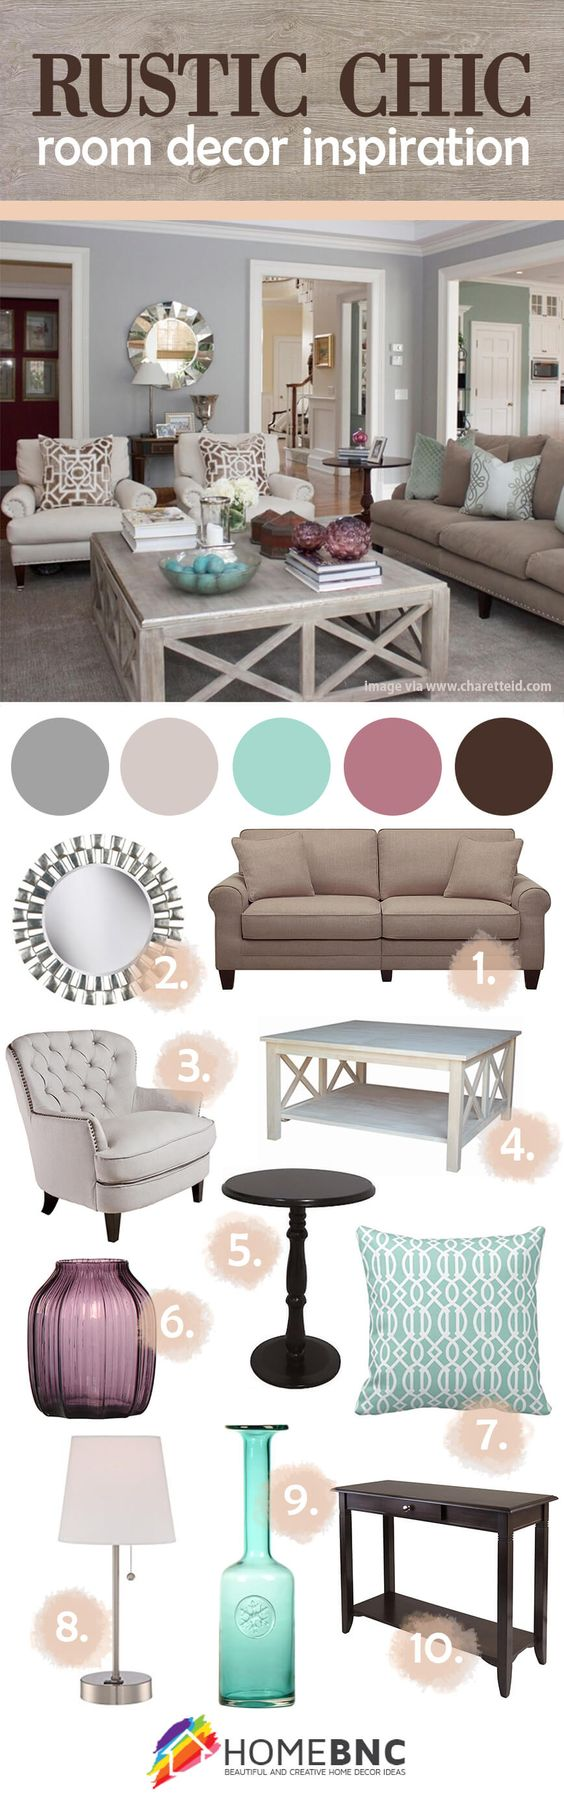 Pink living rooms ideas that are not overbearing - Best 25 Living Room Colors Ideas On Pinterest Living Room Paint Living Room Paint Colors And Living Room